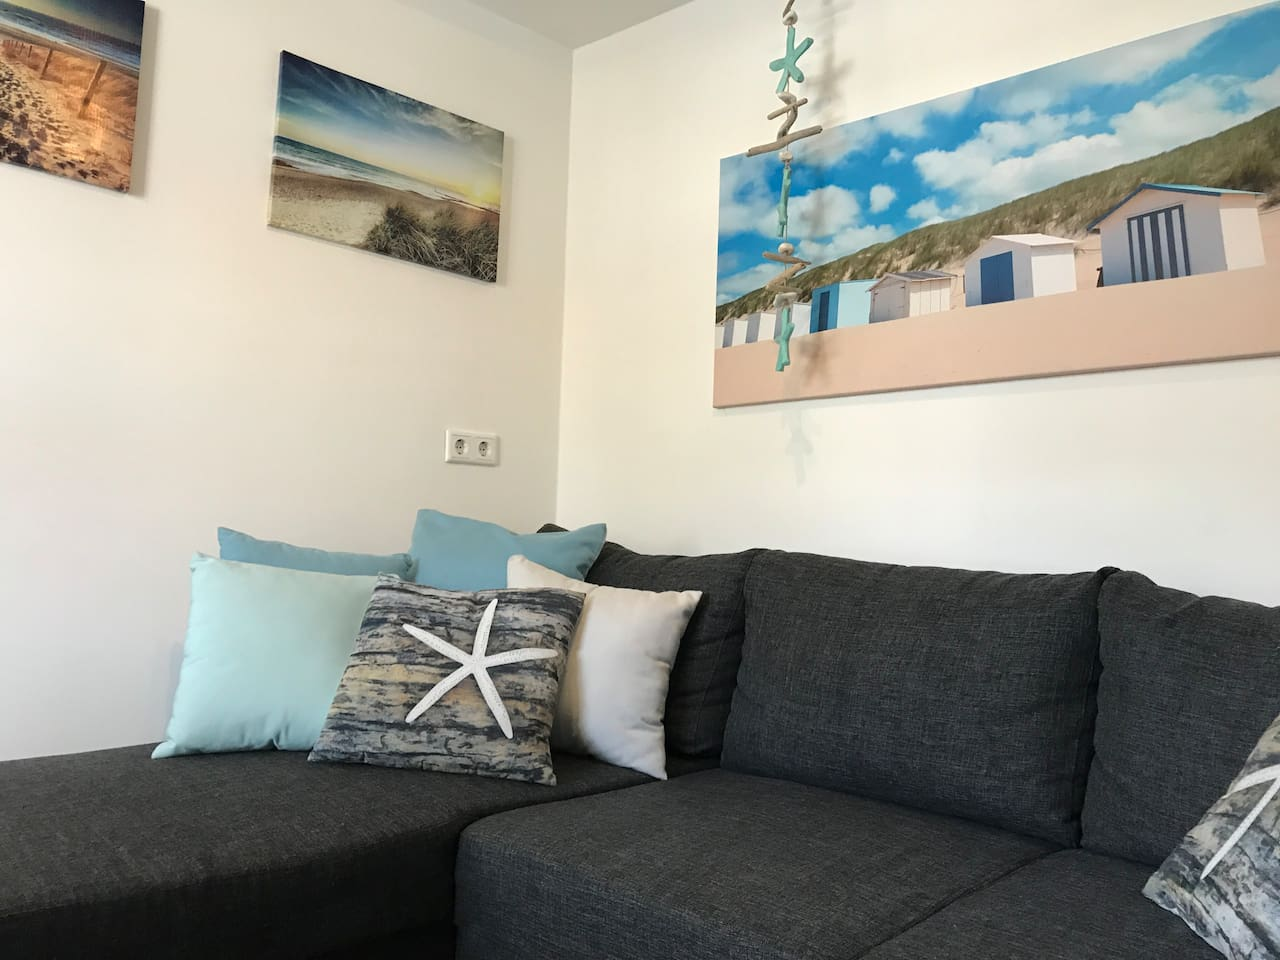 Livingroom with extra bedsofa (2 persons)